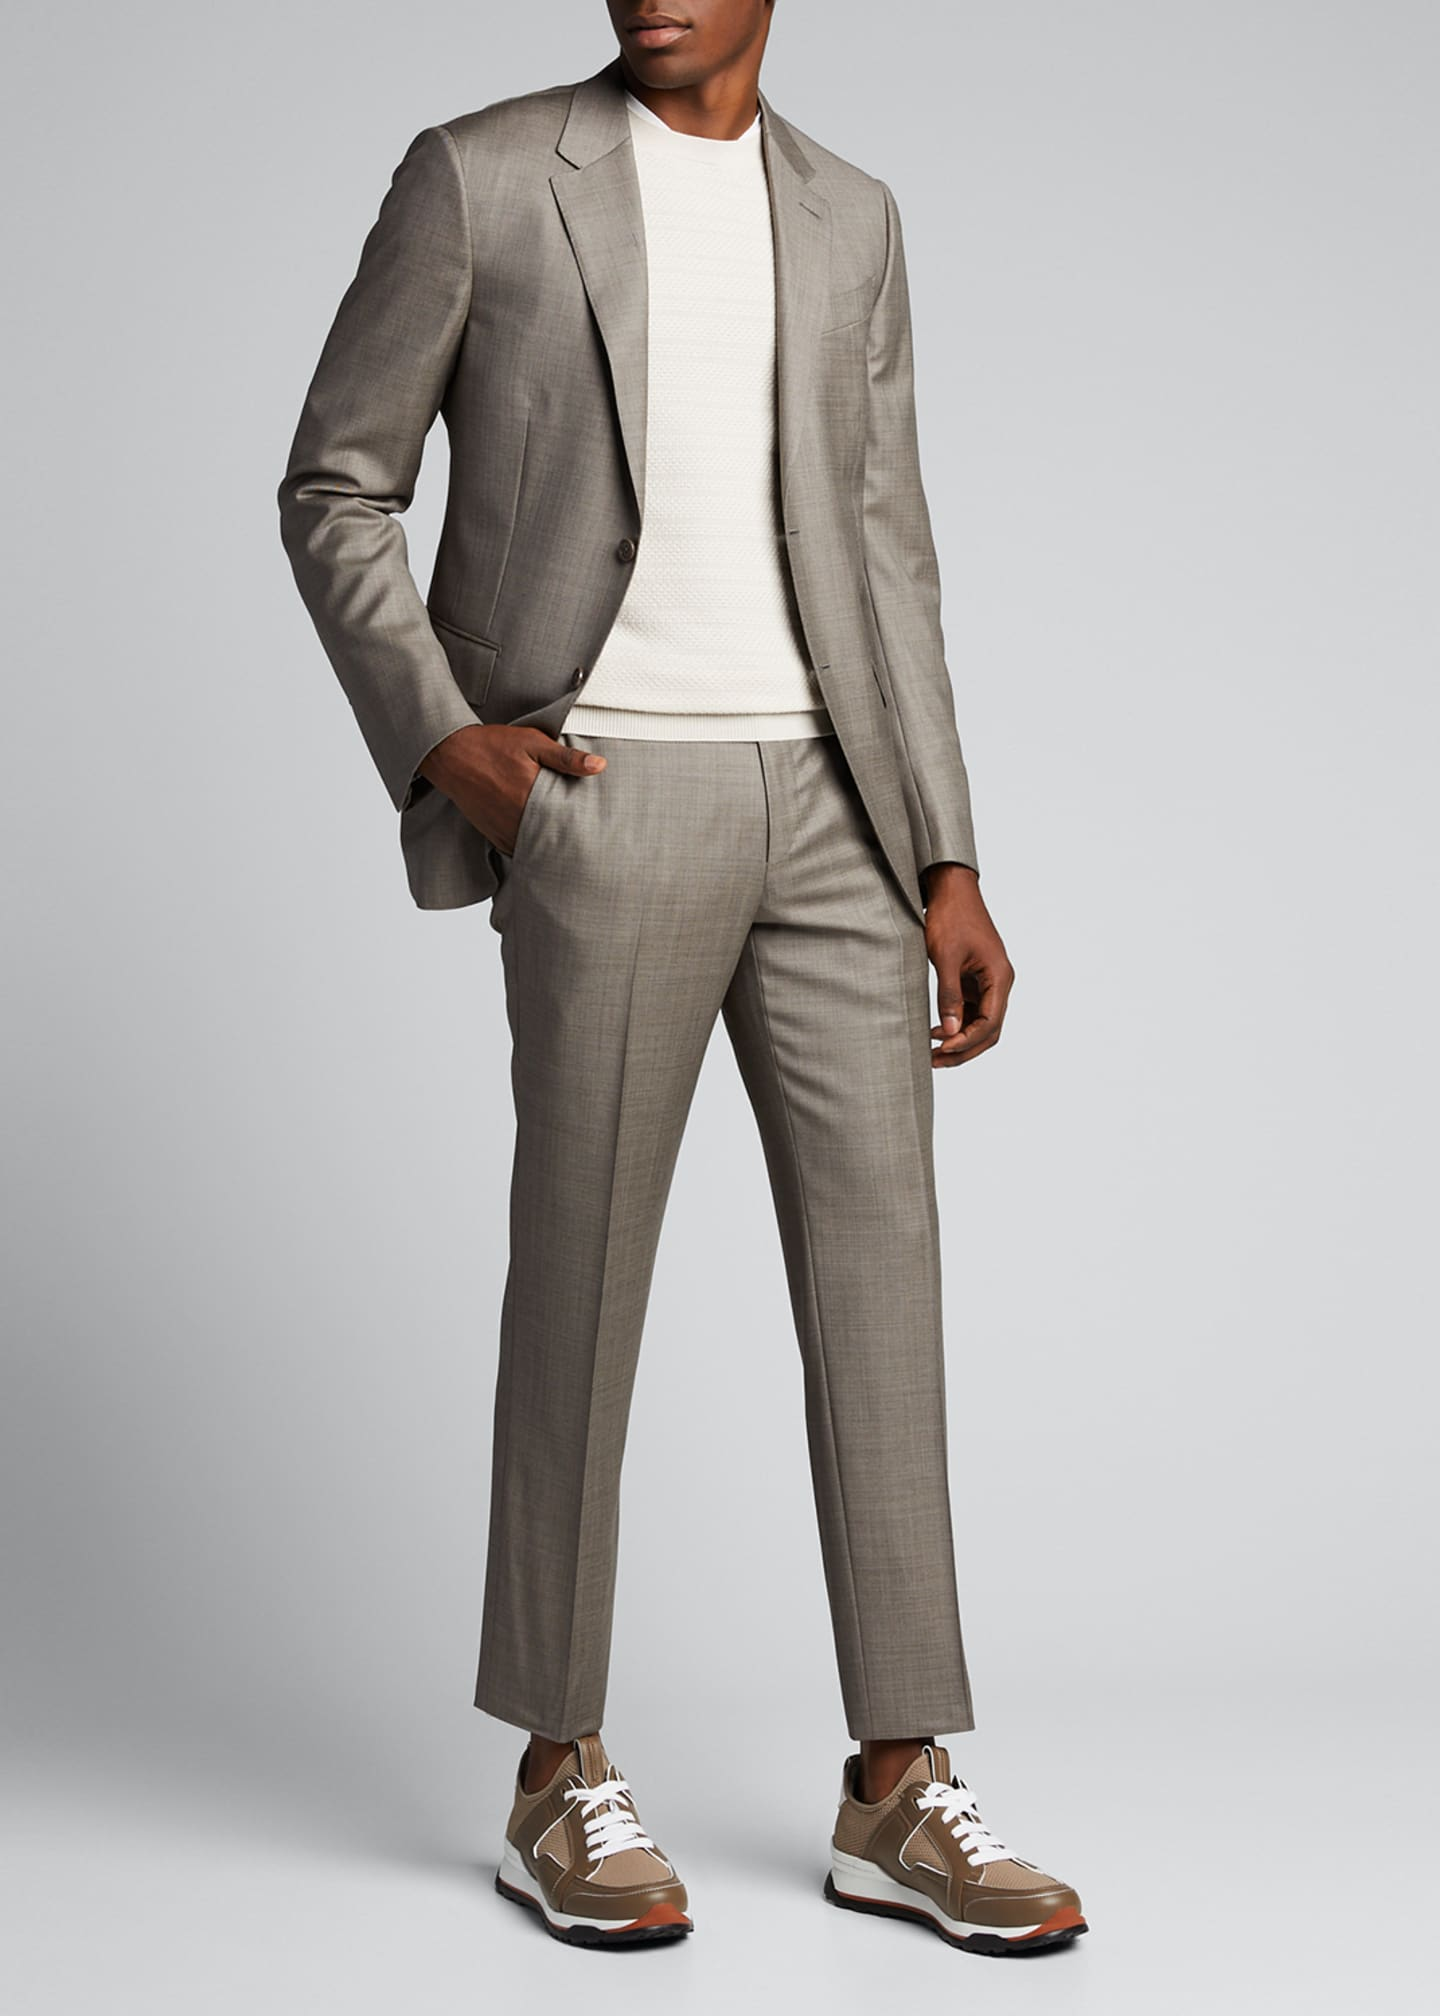 Ermenegildo Zegna Men's Sharkskin Wool Two-Piece Suit